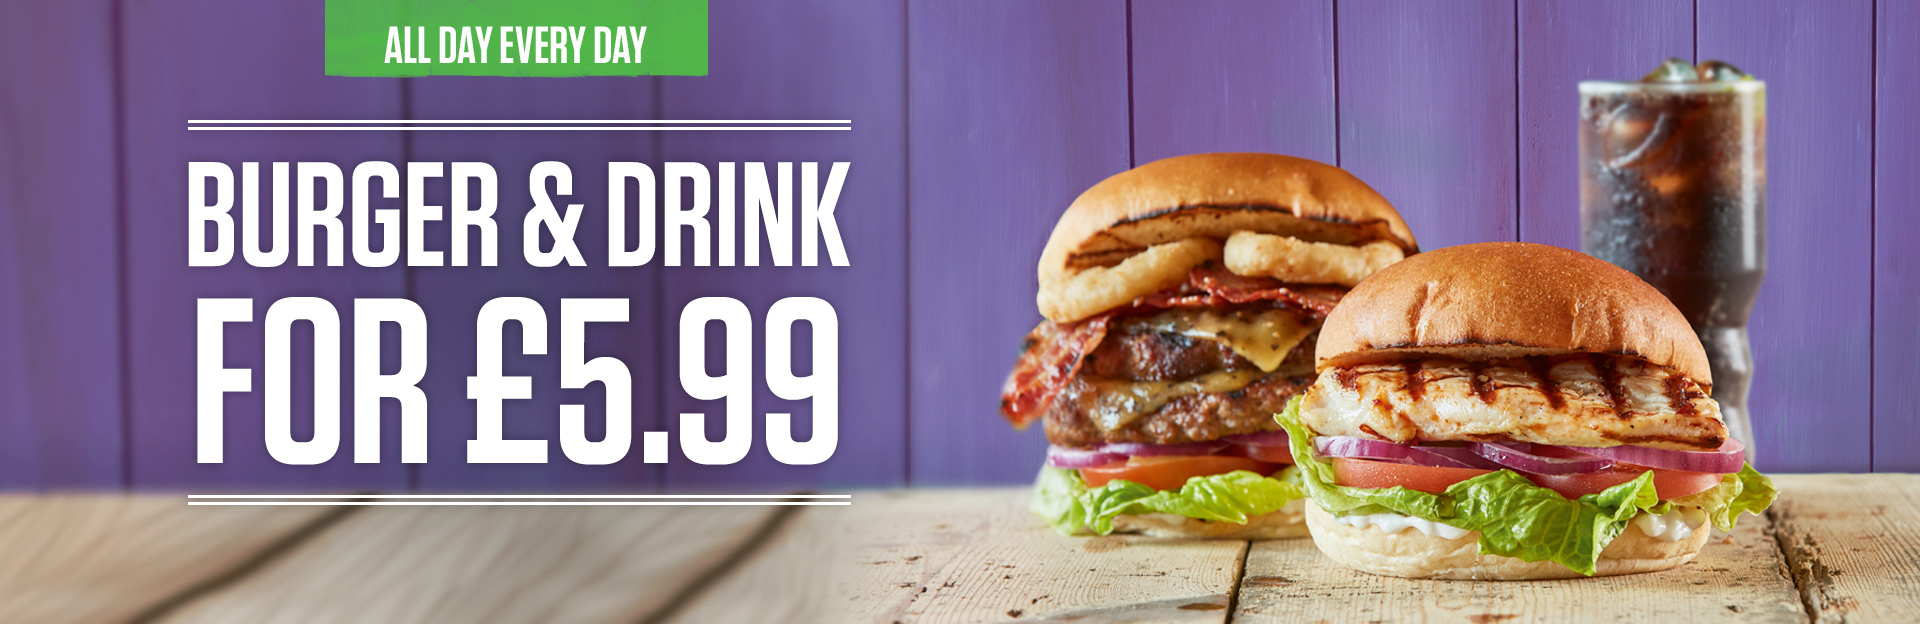 Burger and Drink Deal at The Red Lion